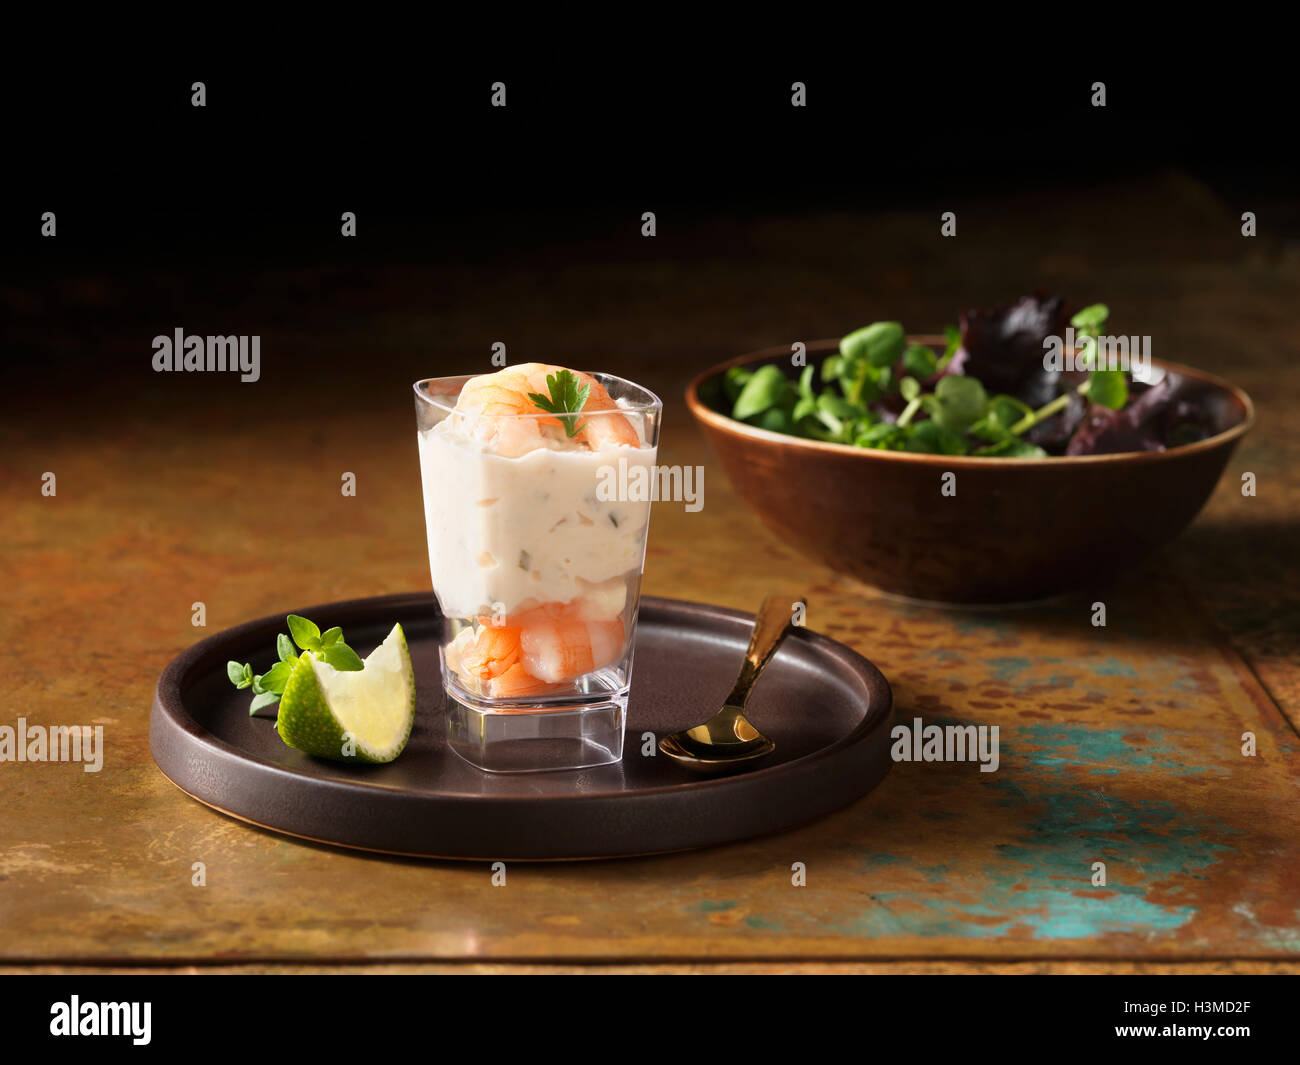 Christmas, celebration food, prawn and salmon appetiser, fresh slice of lime, thyme, salad leaves in bowl - Stock Image